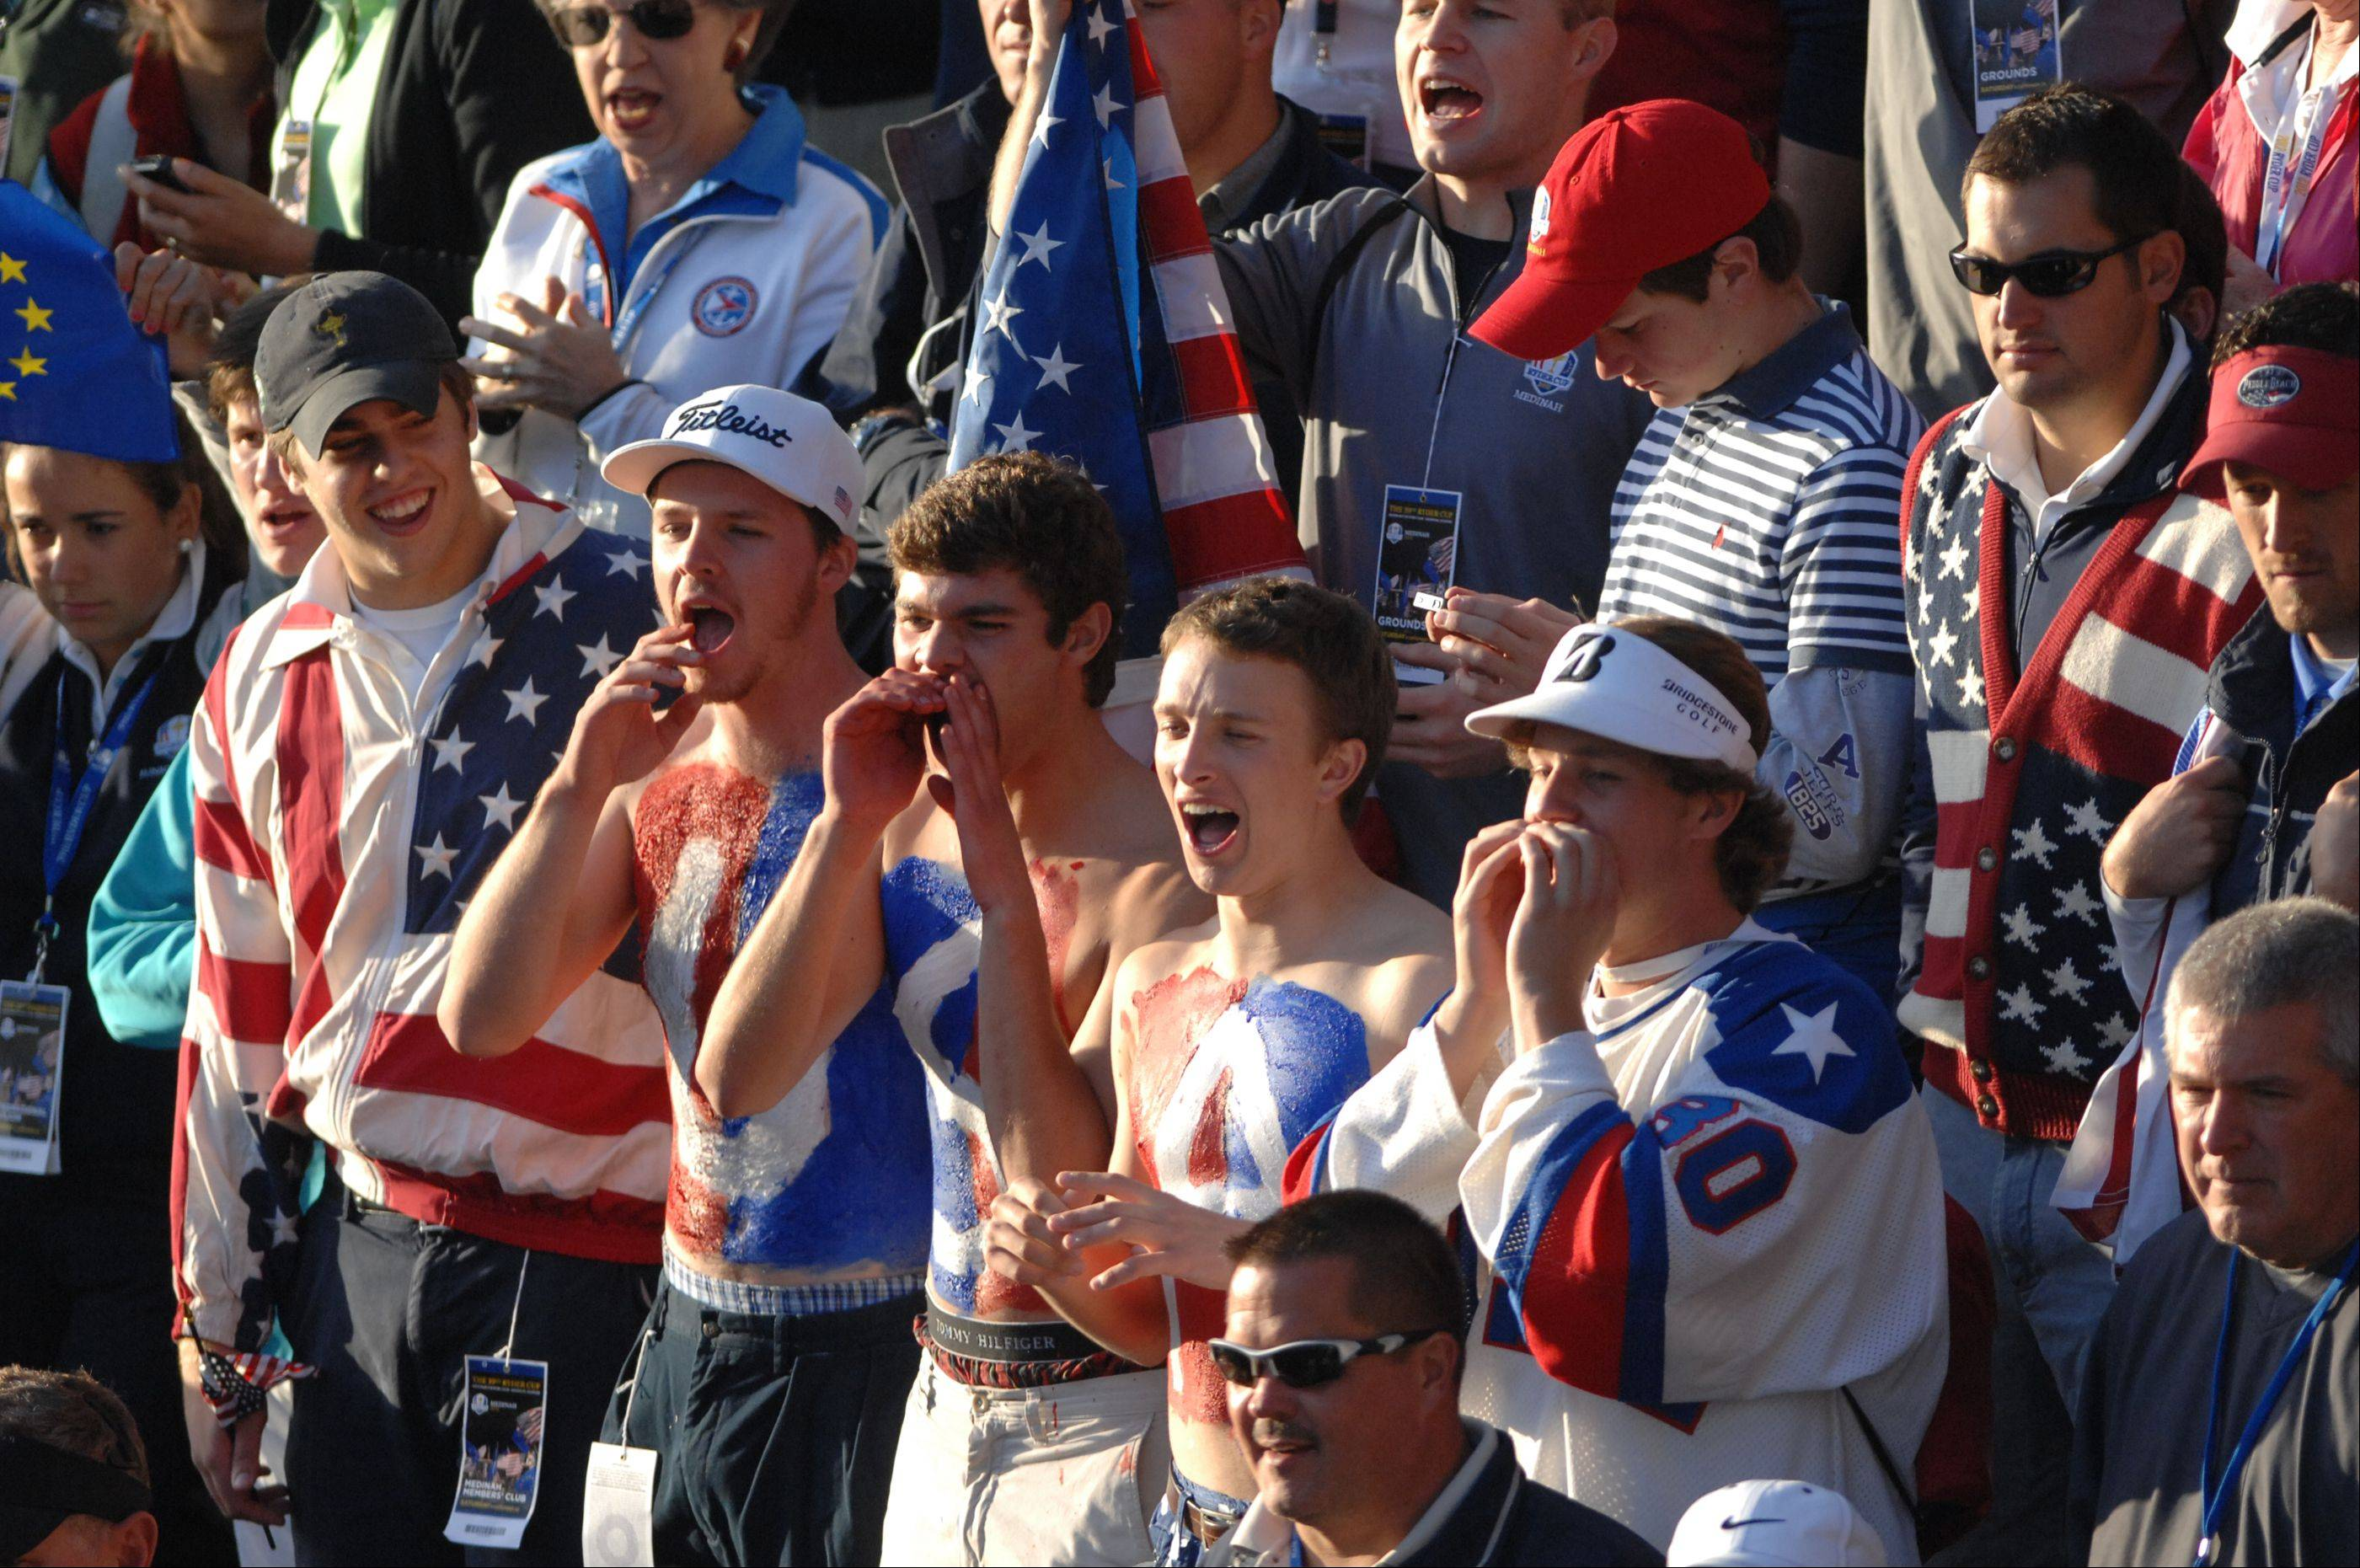 Team USA fans show their support at the first tee on day two of the 2012 Ryder Cup at Medinah Country Club.